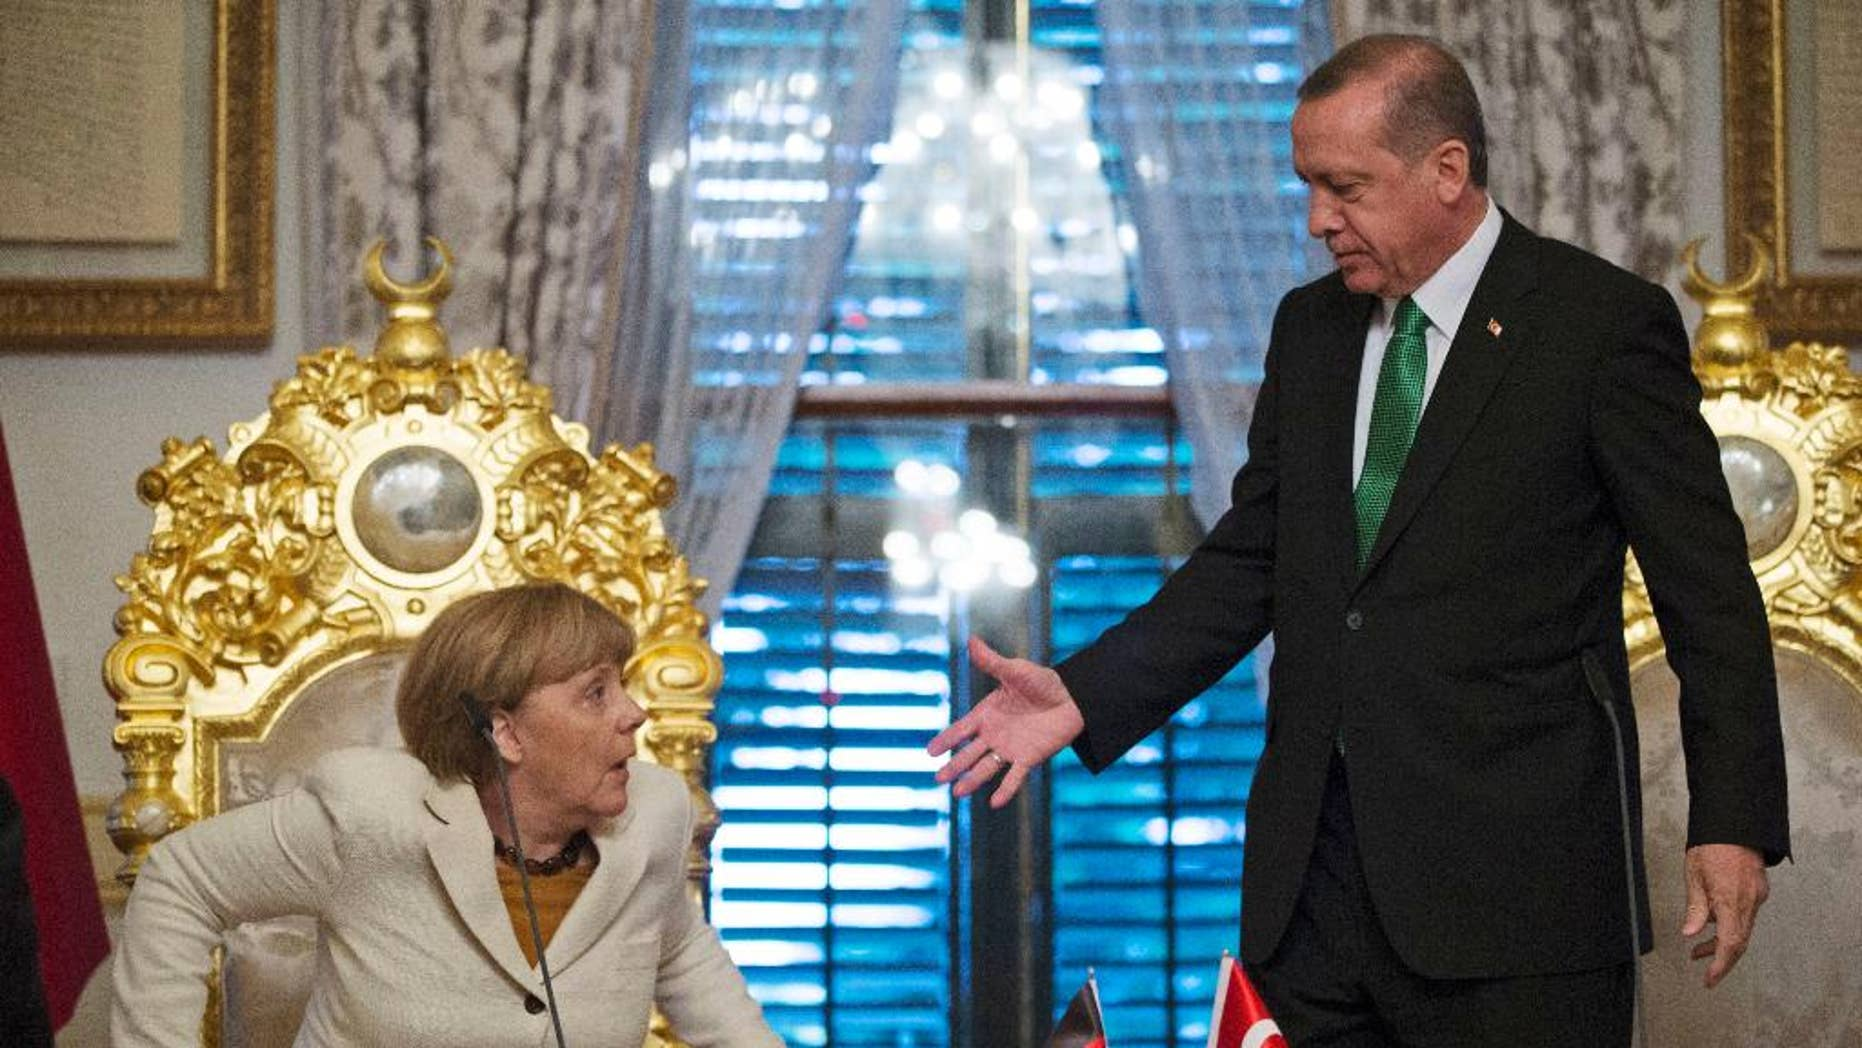 Turkish President Recep Tayyip Erdogan, right, offers his hand to shake hands with Germany's Chancellor Angela Merkel, left, following a joint statement after their meeting in Istanbul, Sunday, Oct. 18, 2015. Merkel met with Turkish leaders to promote a EU plan that would offer aid and concessions to Turkey in exchange for measures to stem the mass movement of migrants across Europe's borders. (Tolga Bozoglu, Pool Photo via AP)